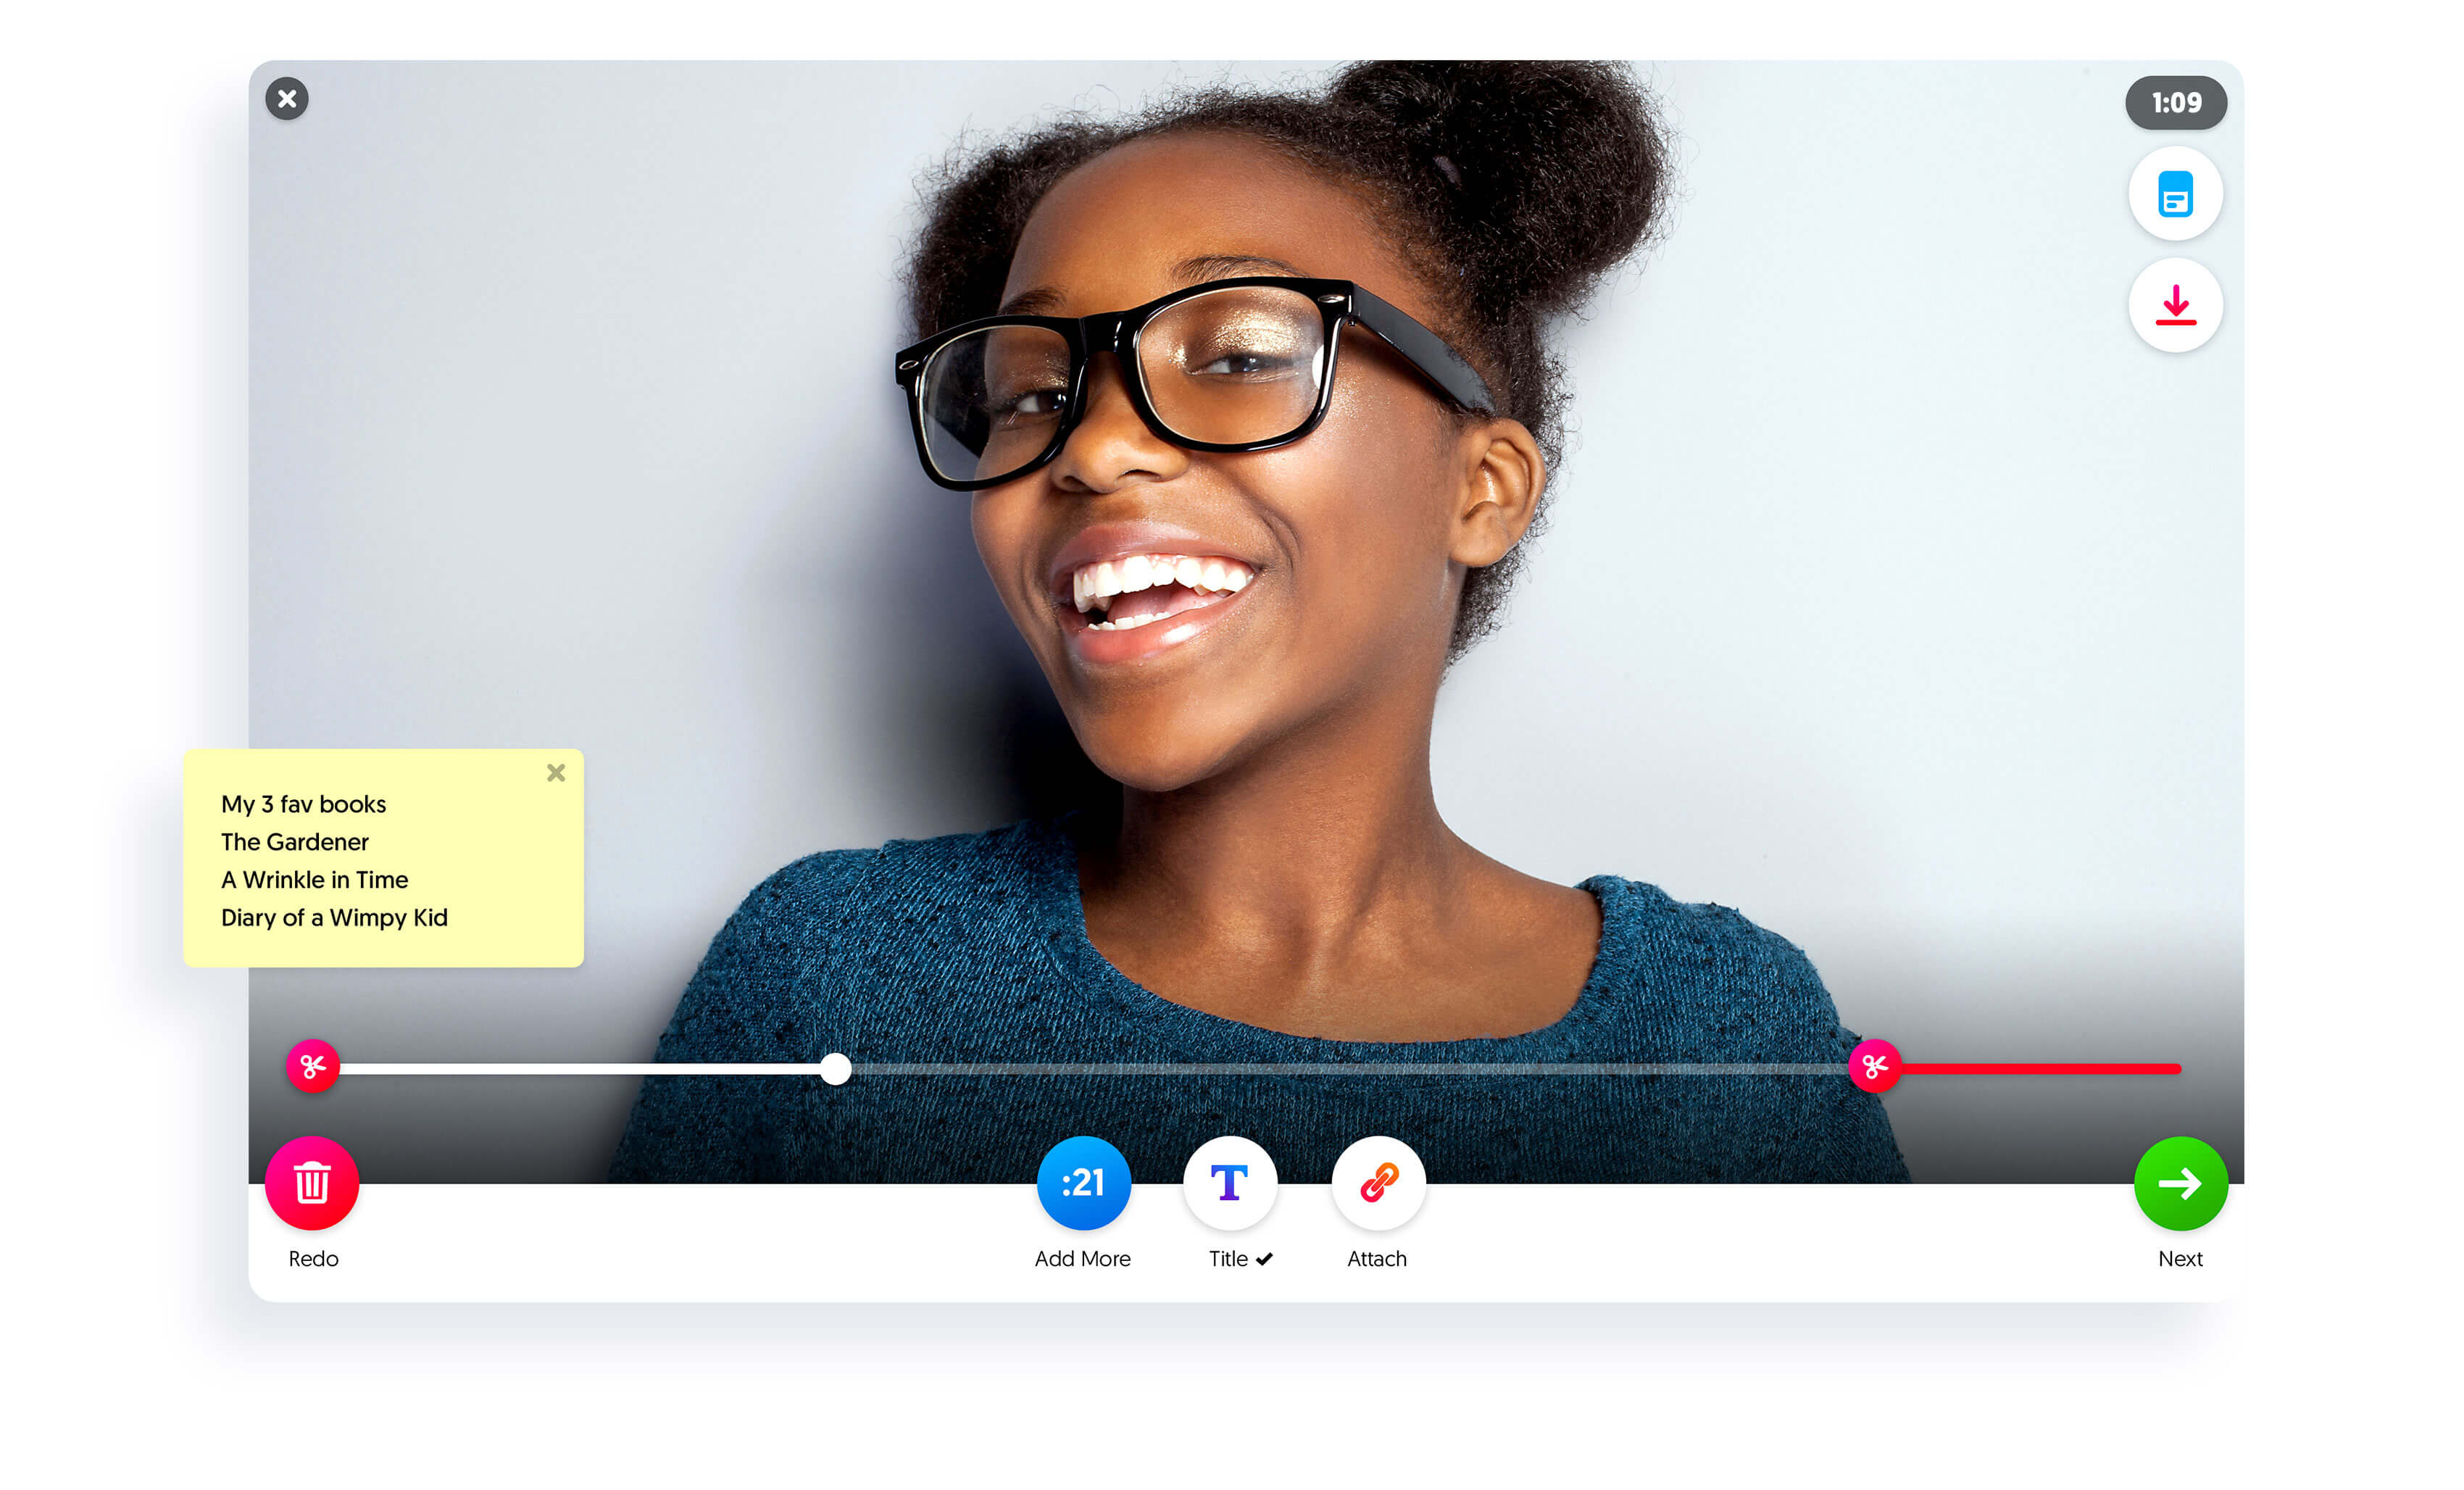 The review step of recording in Flipgrid. On the review step you can view your notes, trim and add more to your video, redo your video, add a title, add an attachment, view the topic card, and download your video.